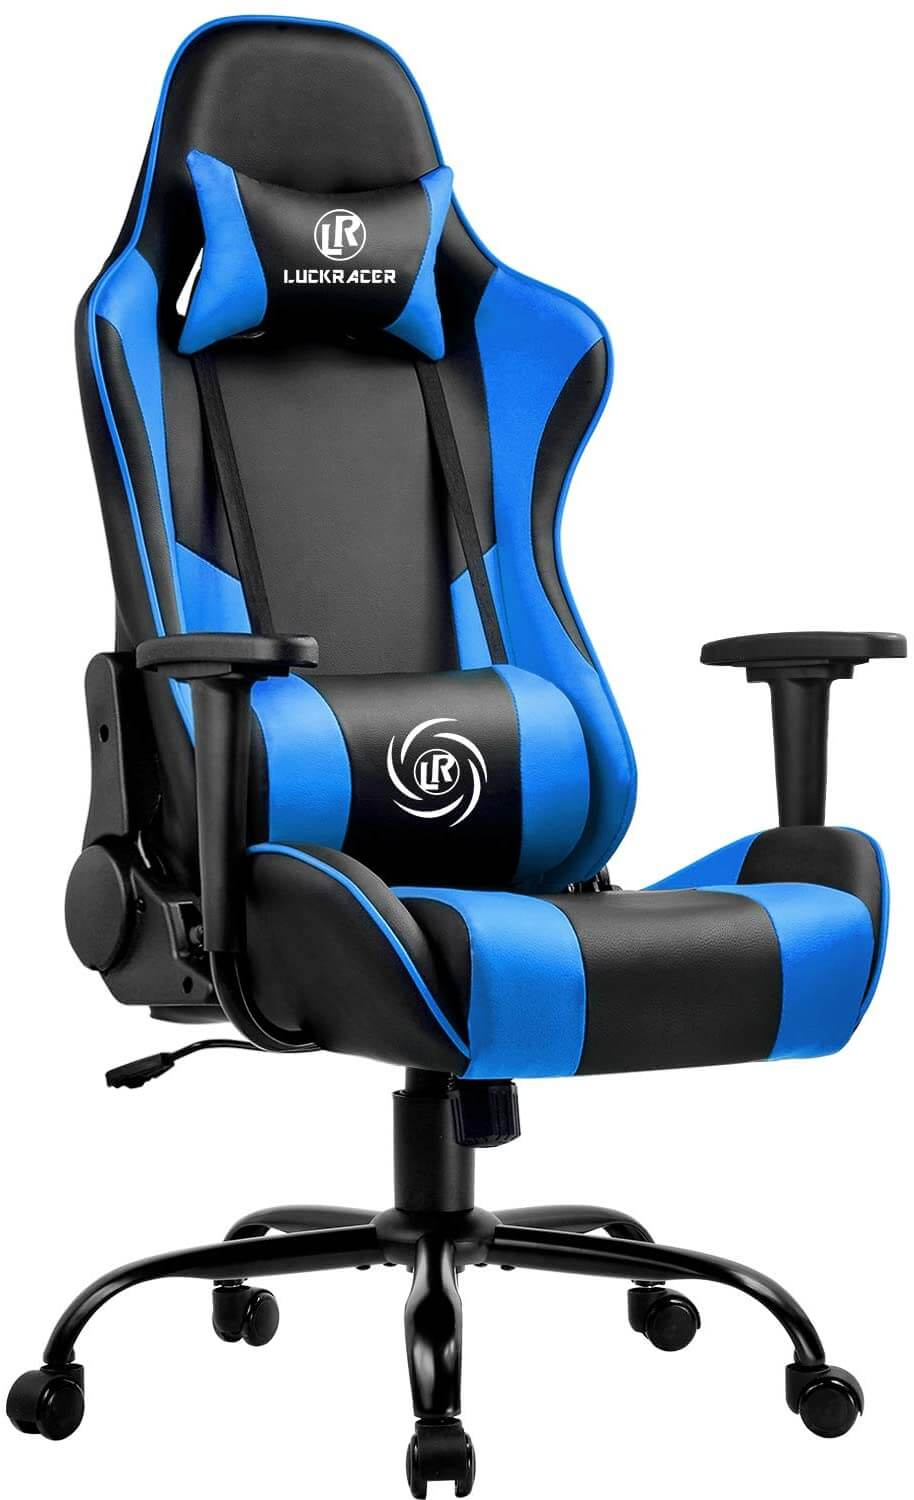 luckracer gaming chair for long hours of comfort gameplay